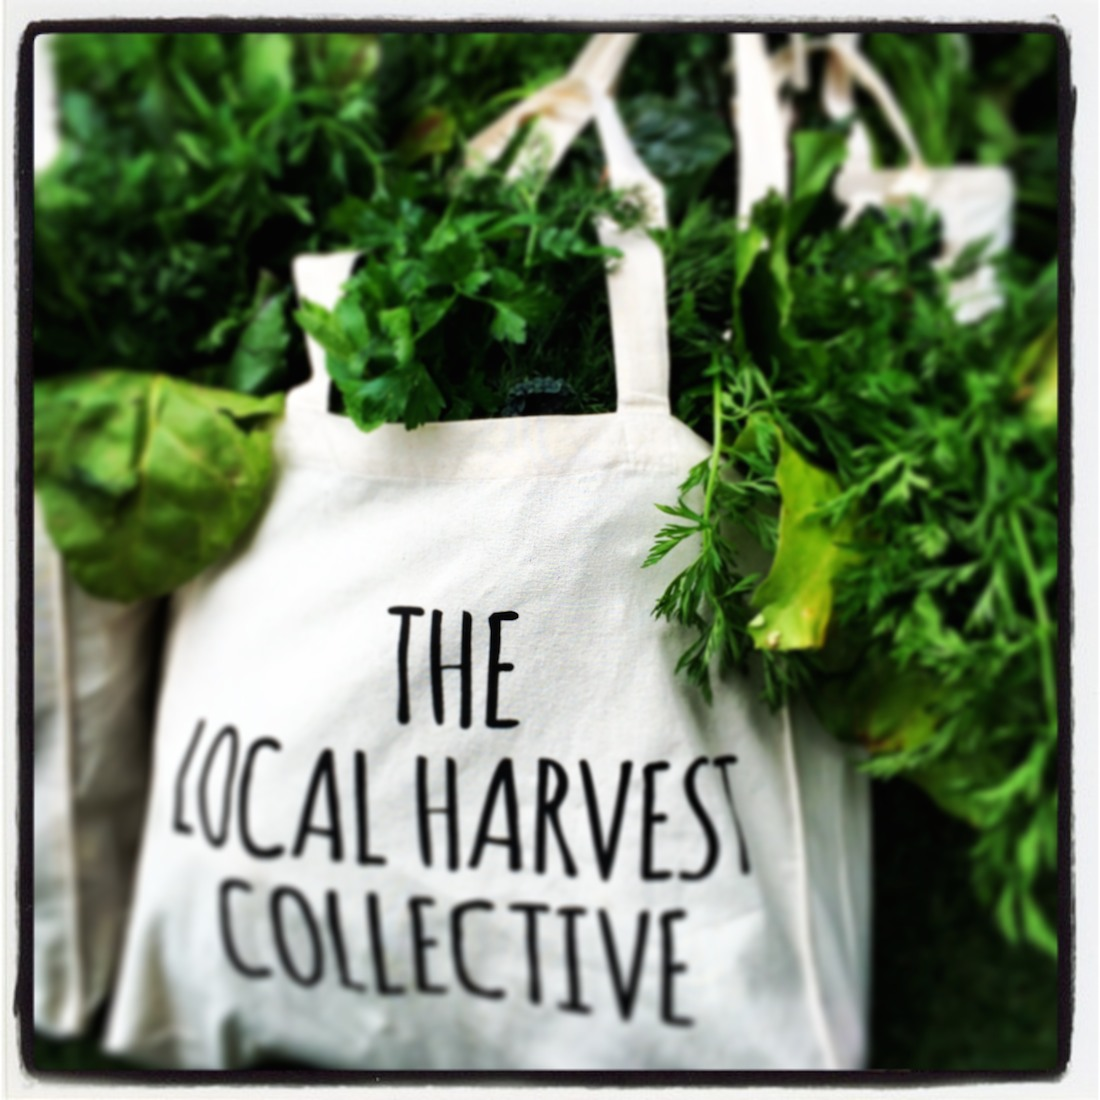 The Local Harvest Collective